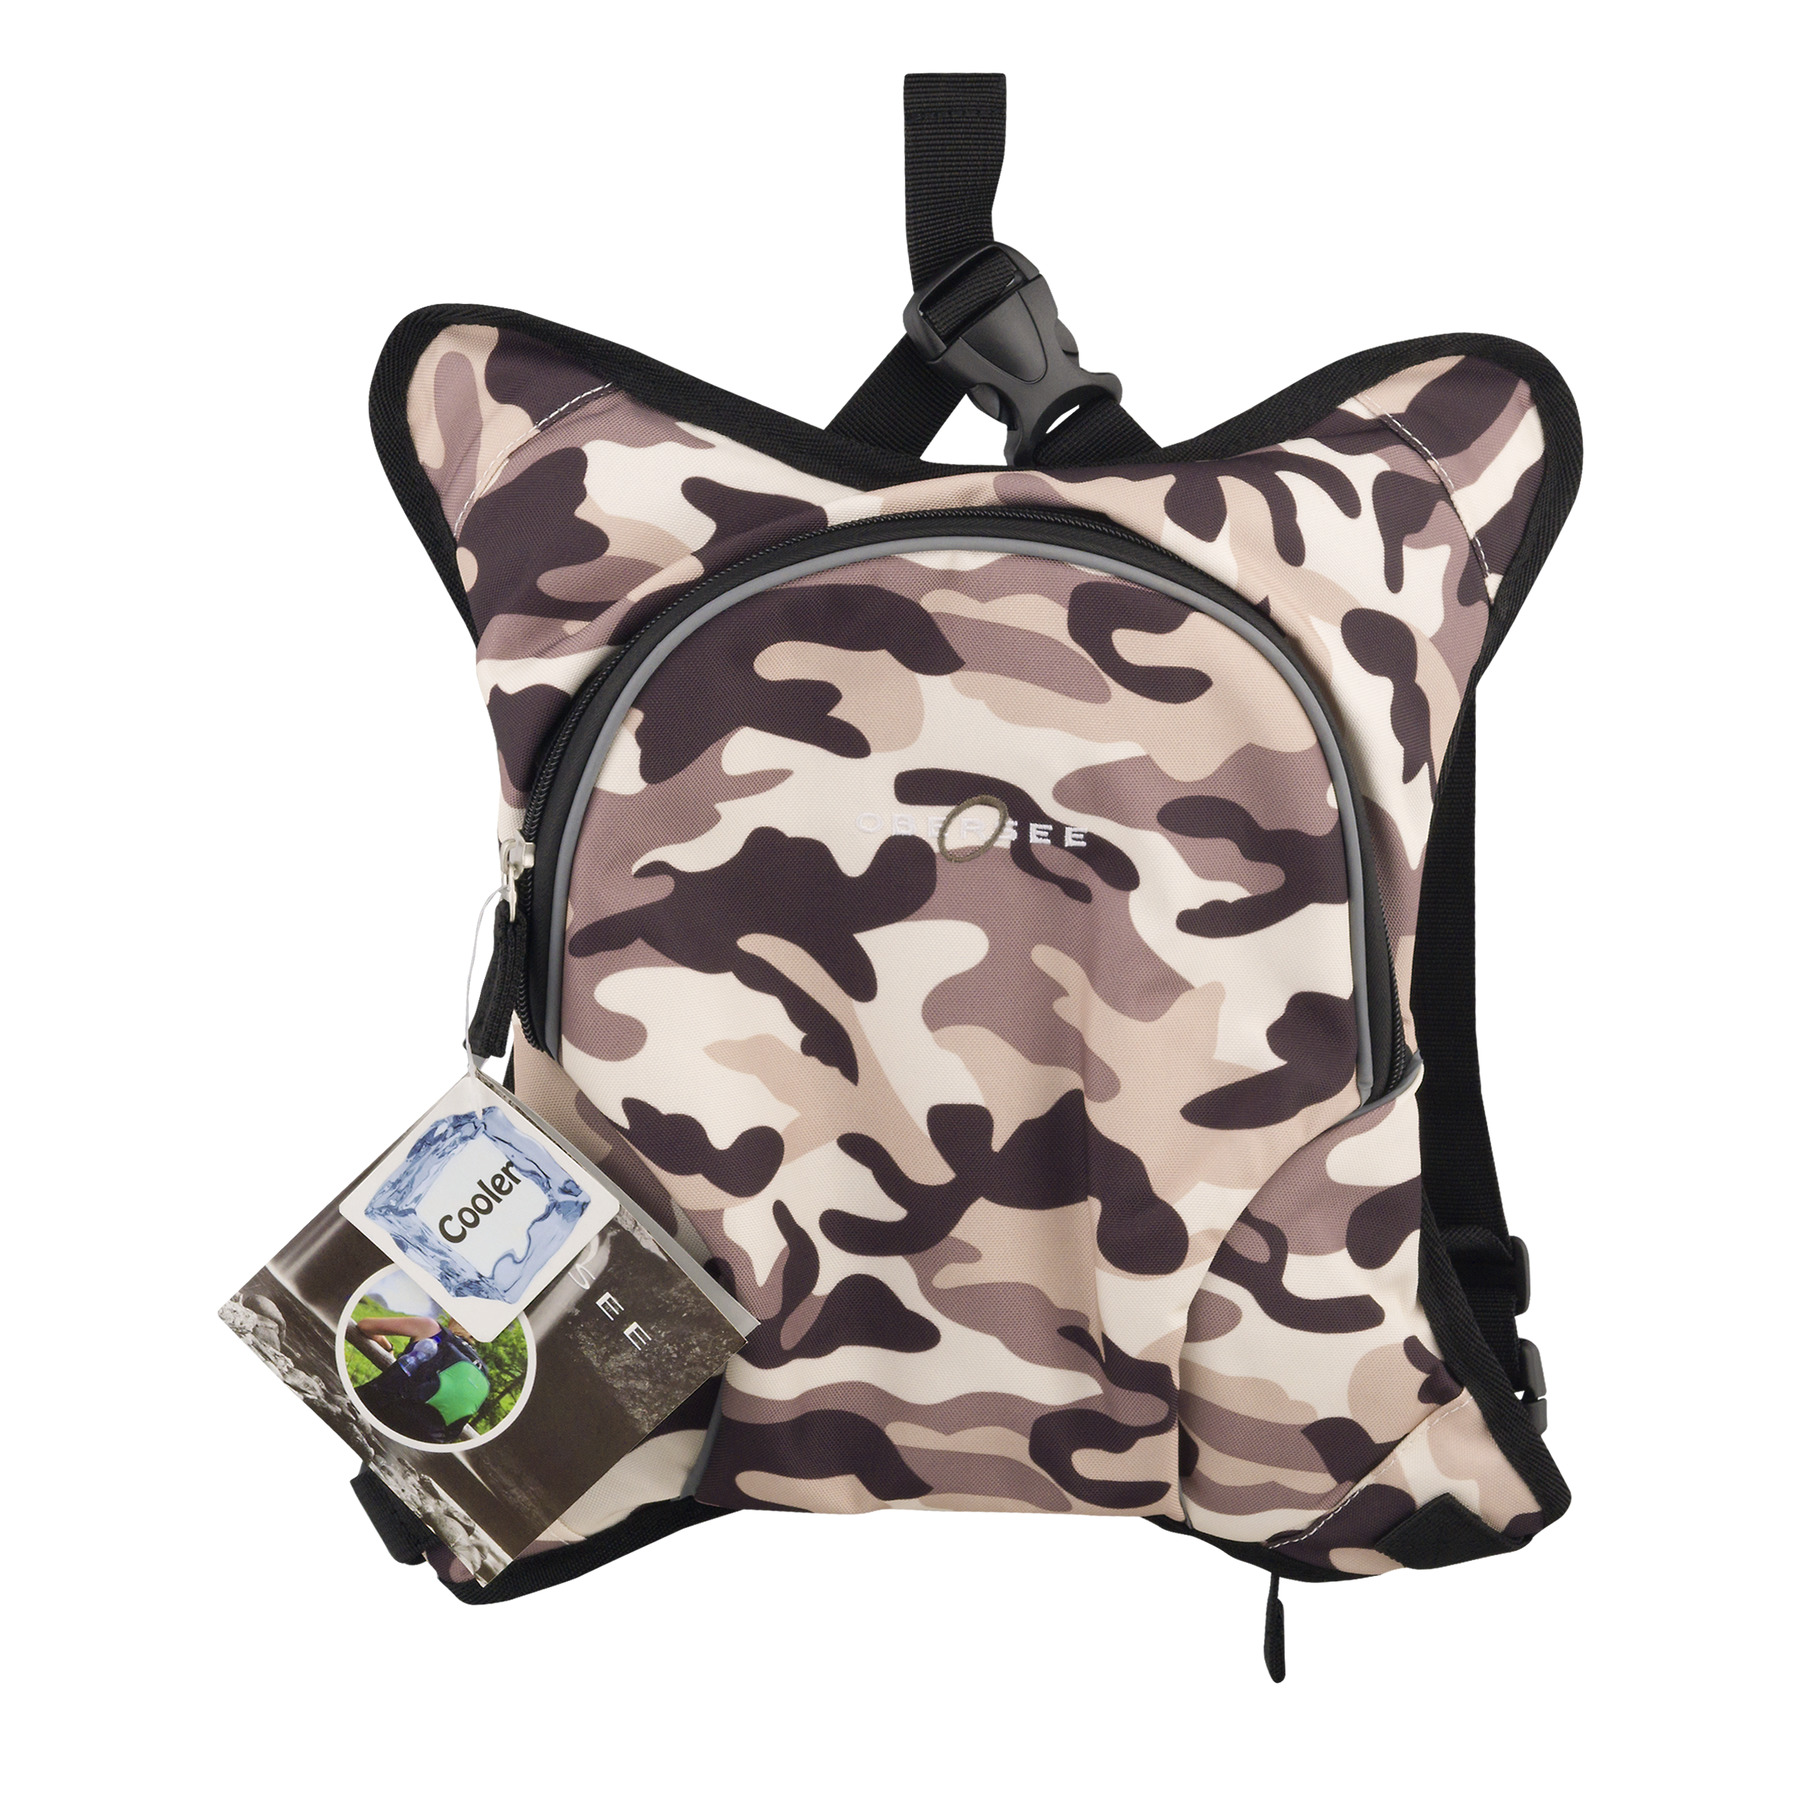 Obersee Baby Bottle Cooler Attachment, Camo